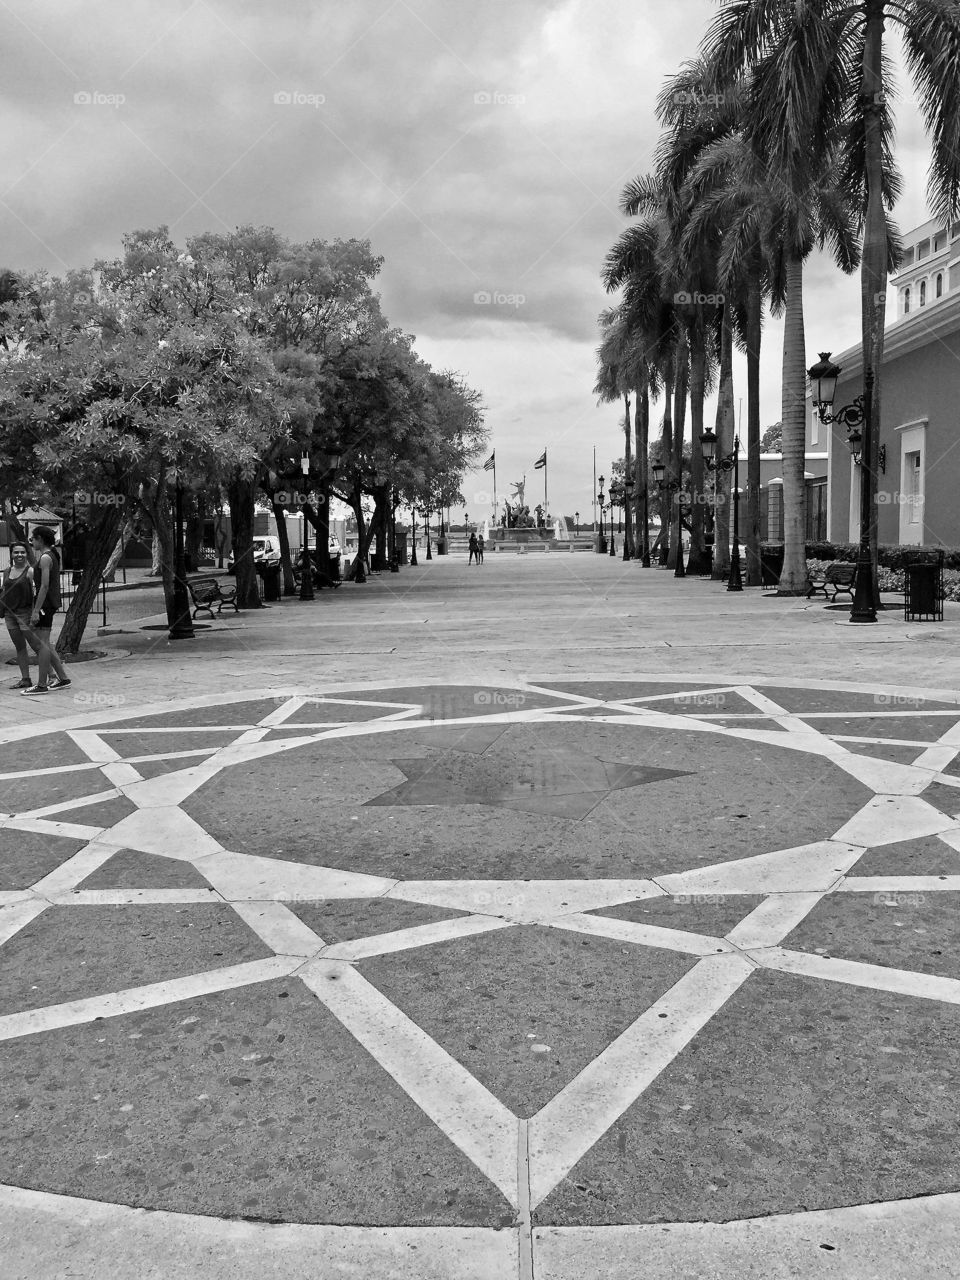 No Person, People, Street, Pavement, Architecture